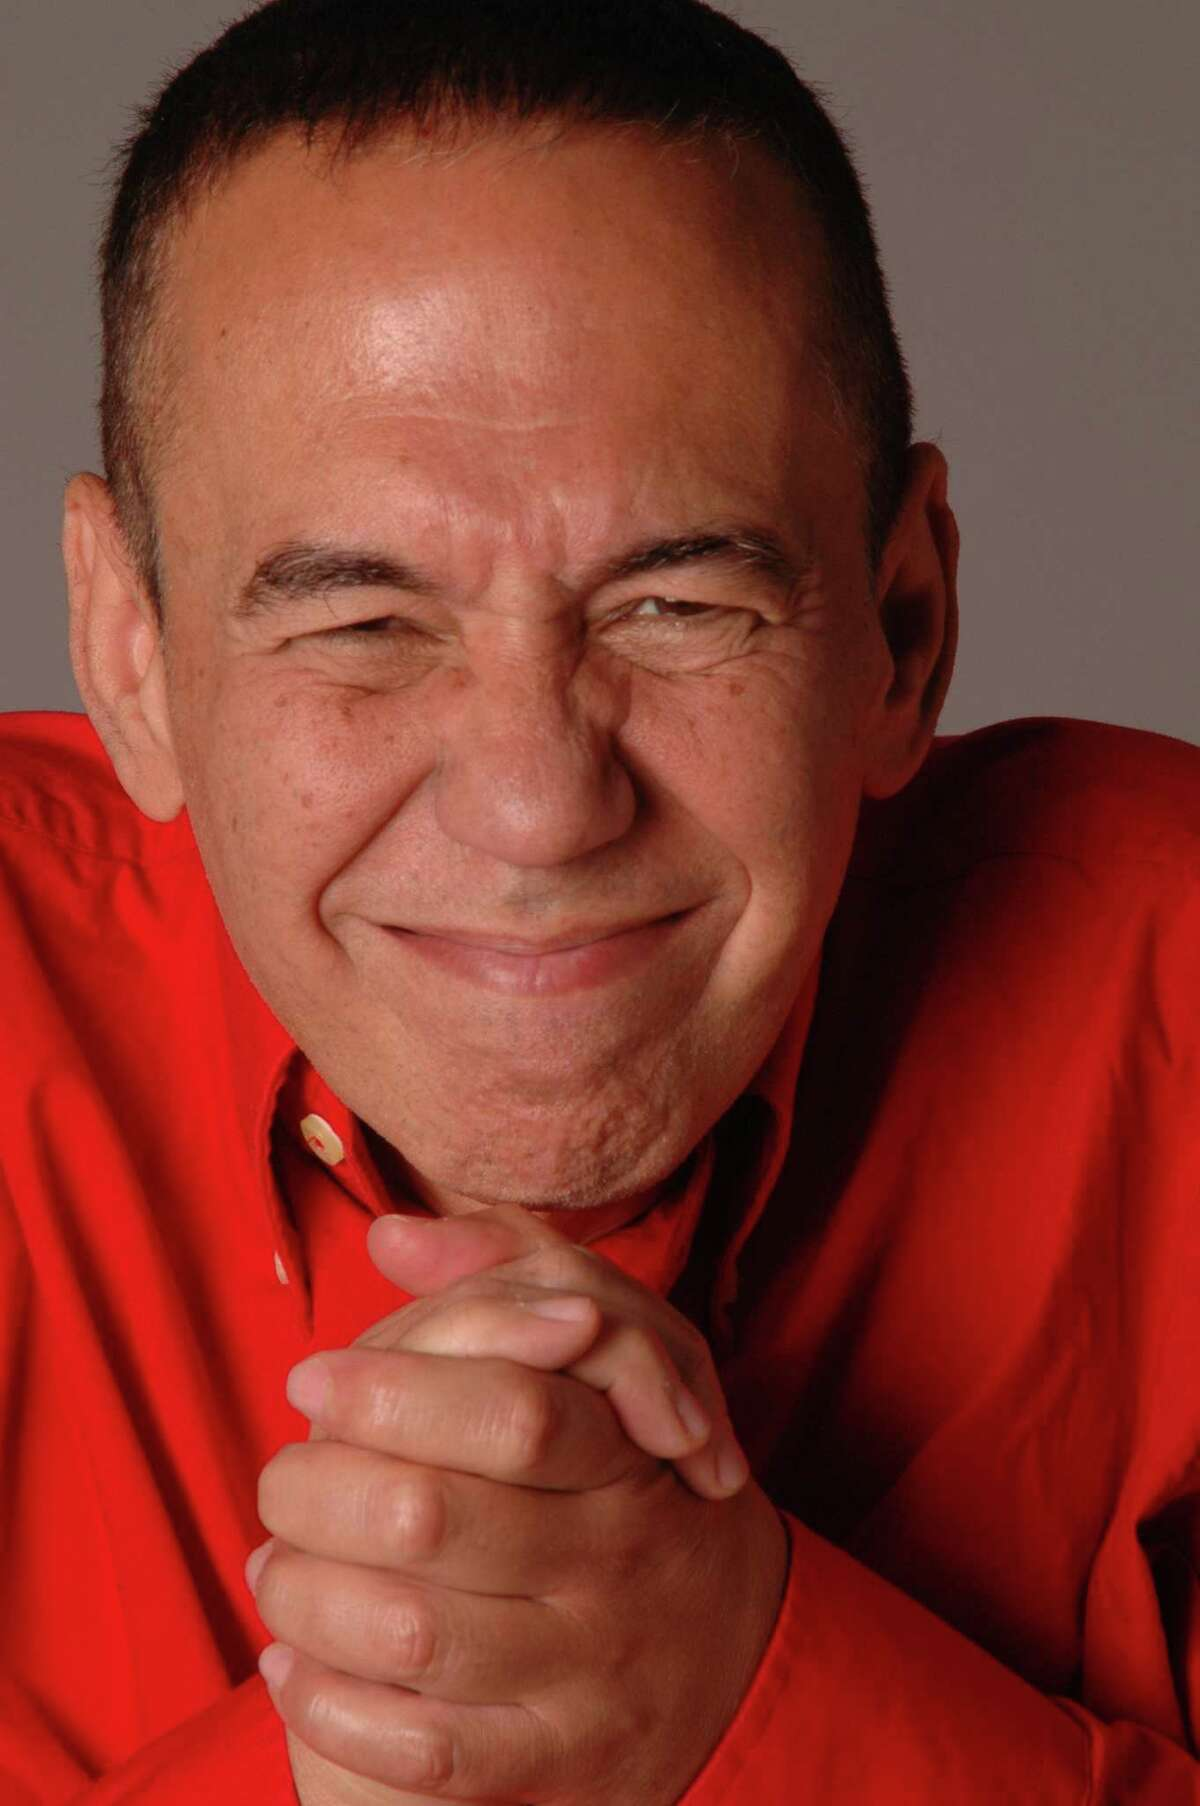 Gilbert Gottfried will be at the Treehouse Comedy Club in Westport on Saturday, Dec. 3.